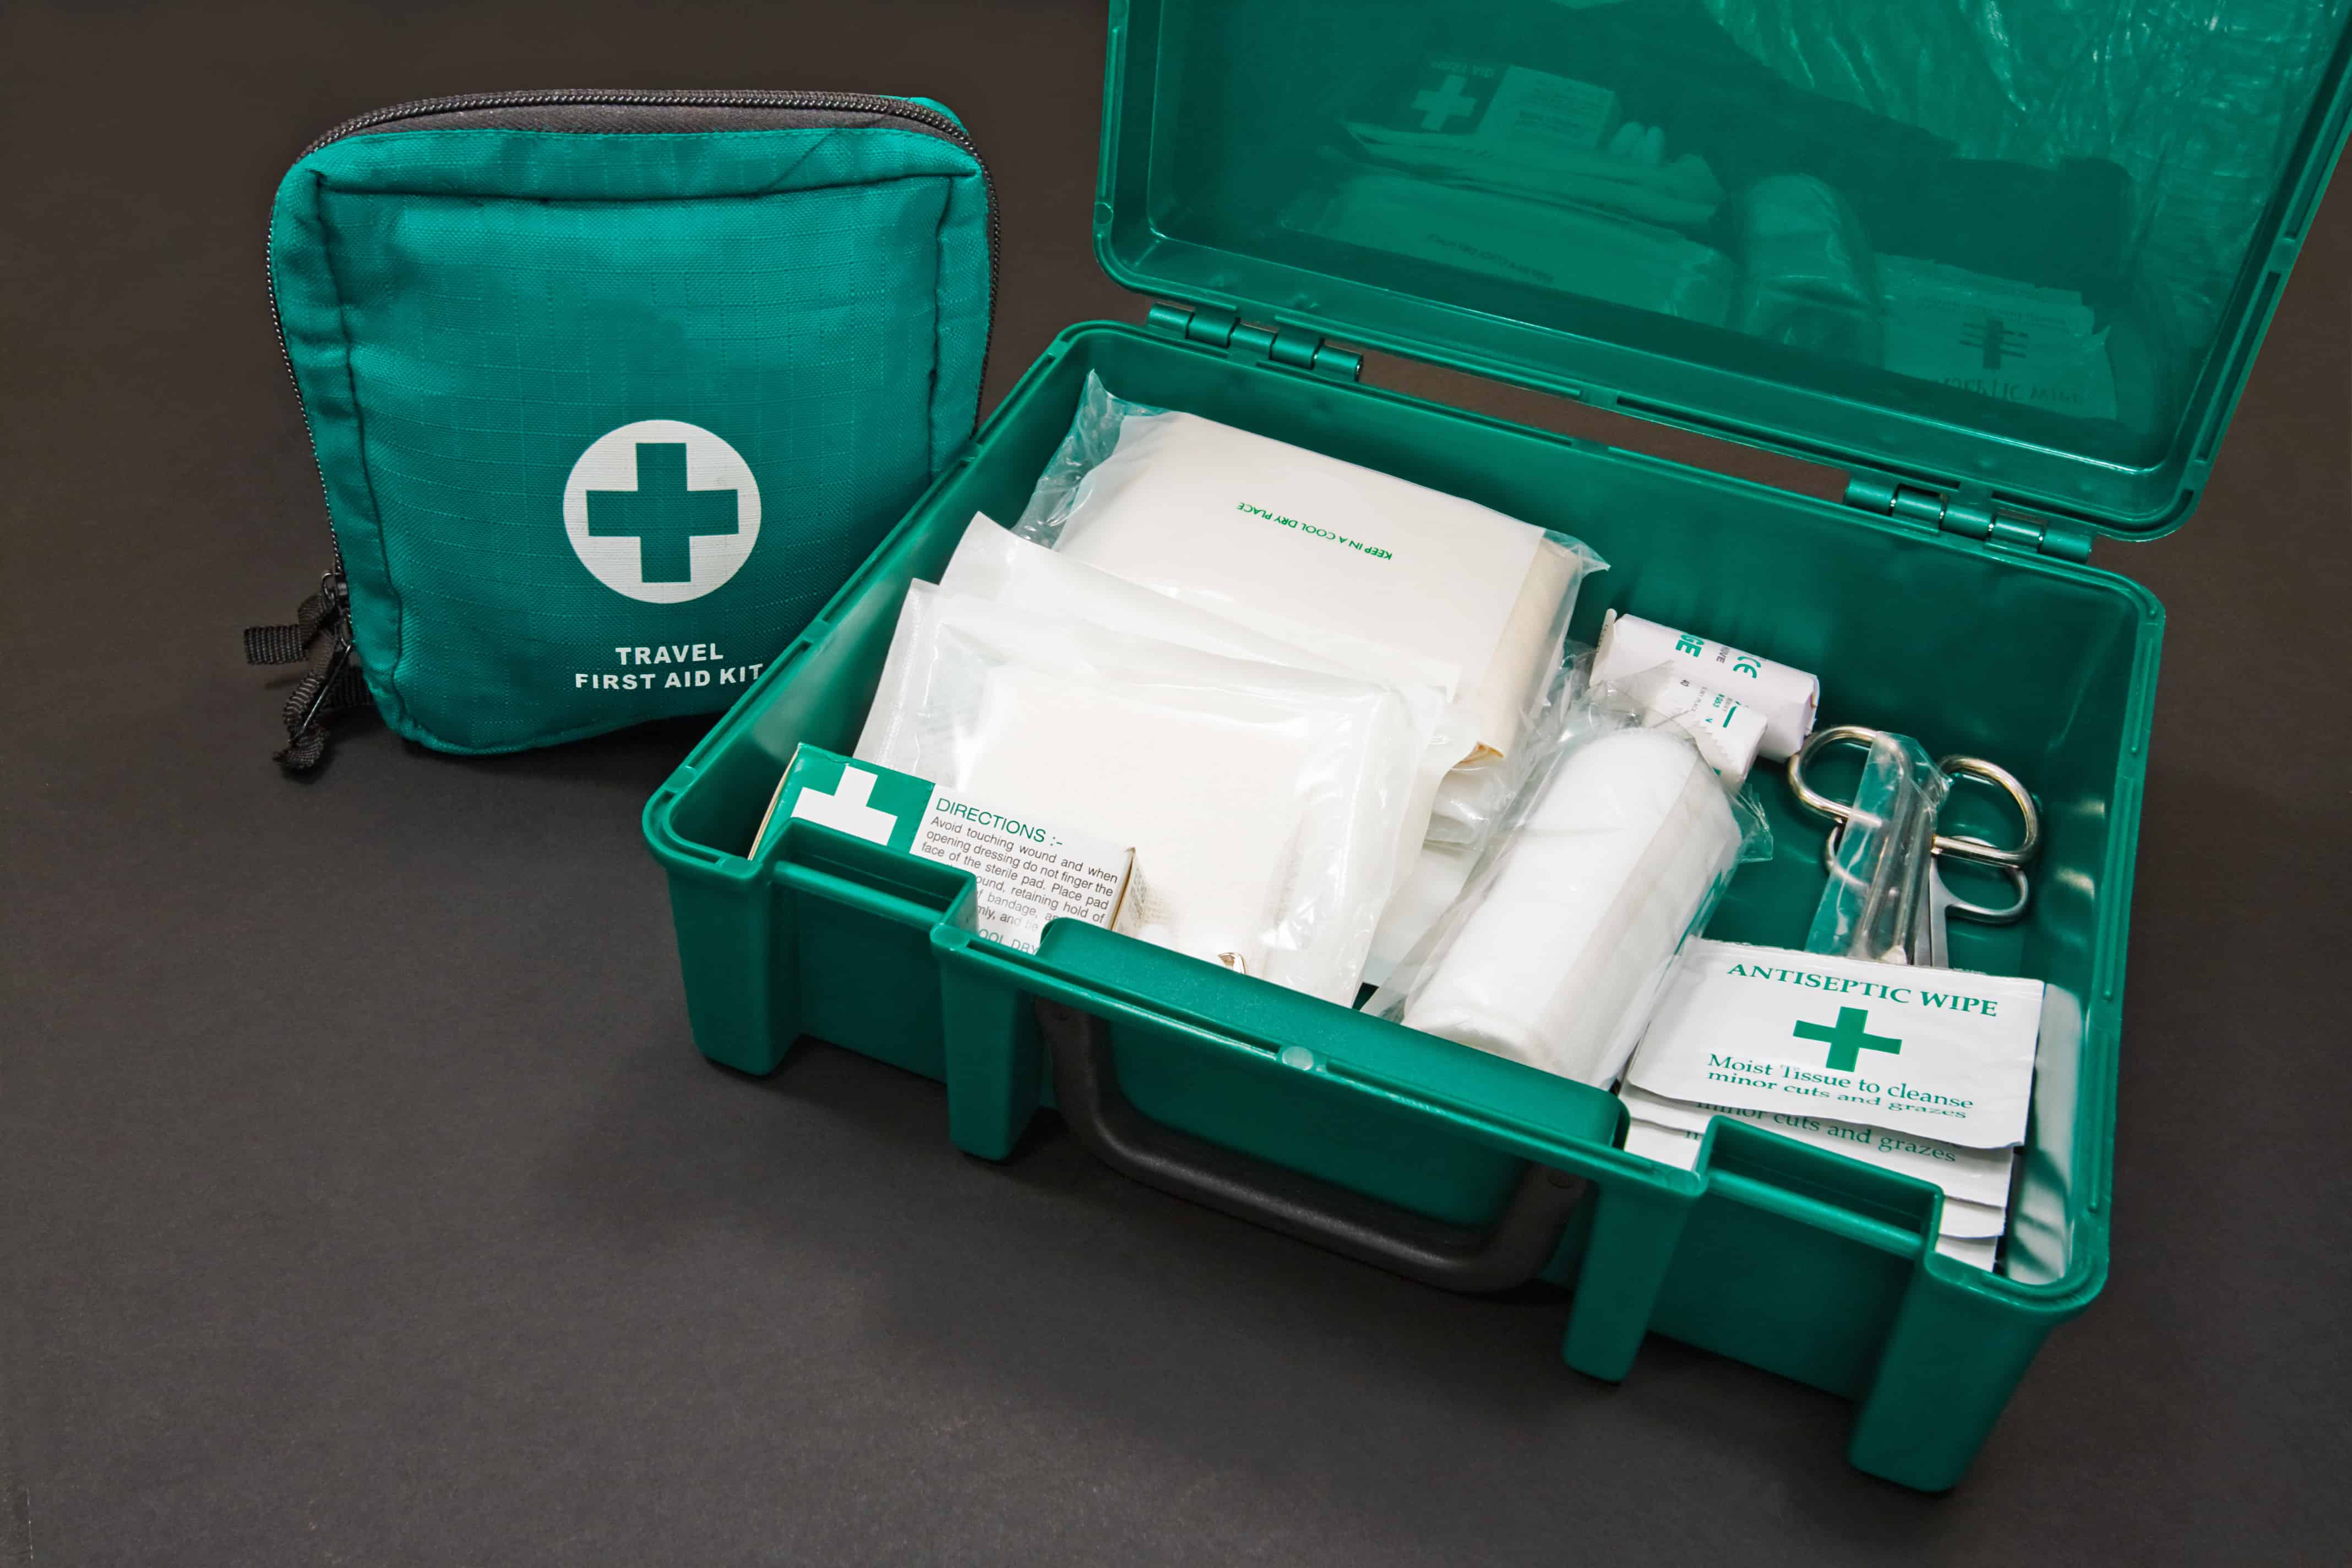 Know you can provide First Aid, before help arrives.